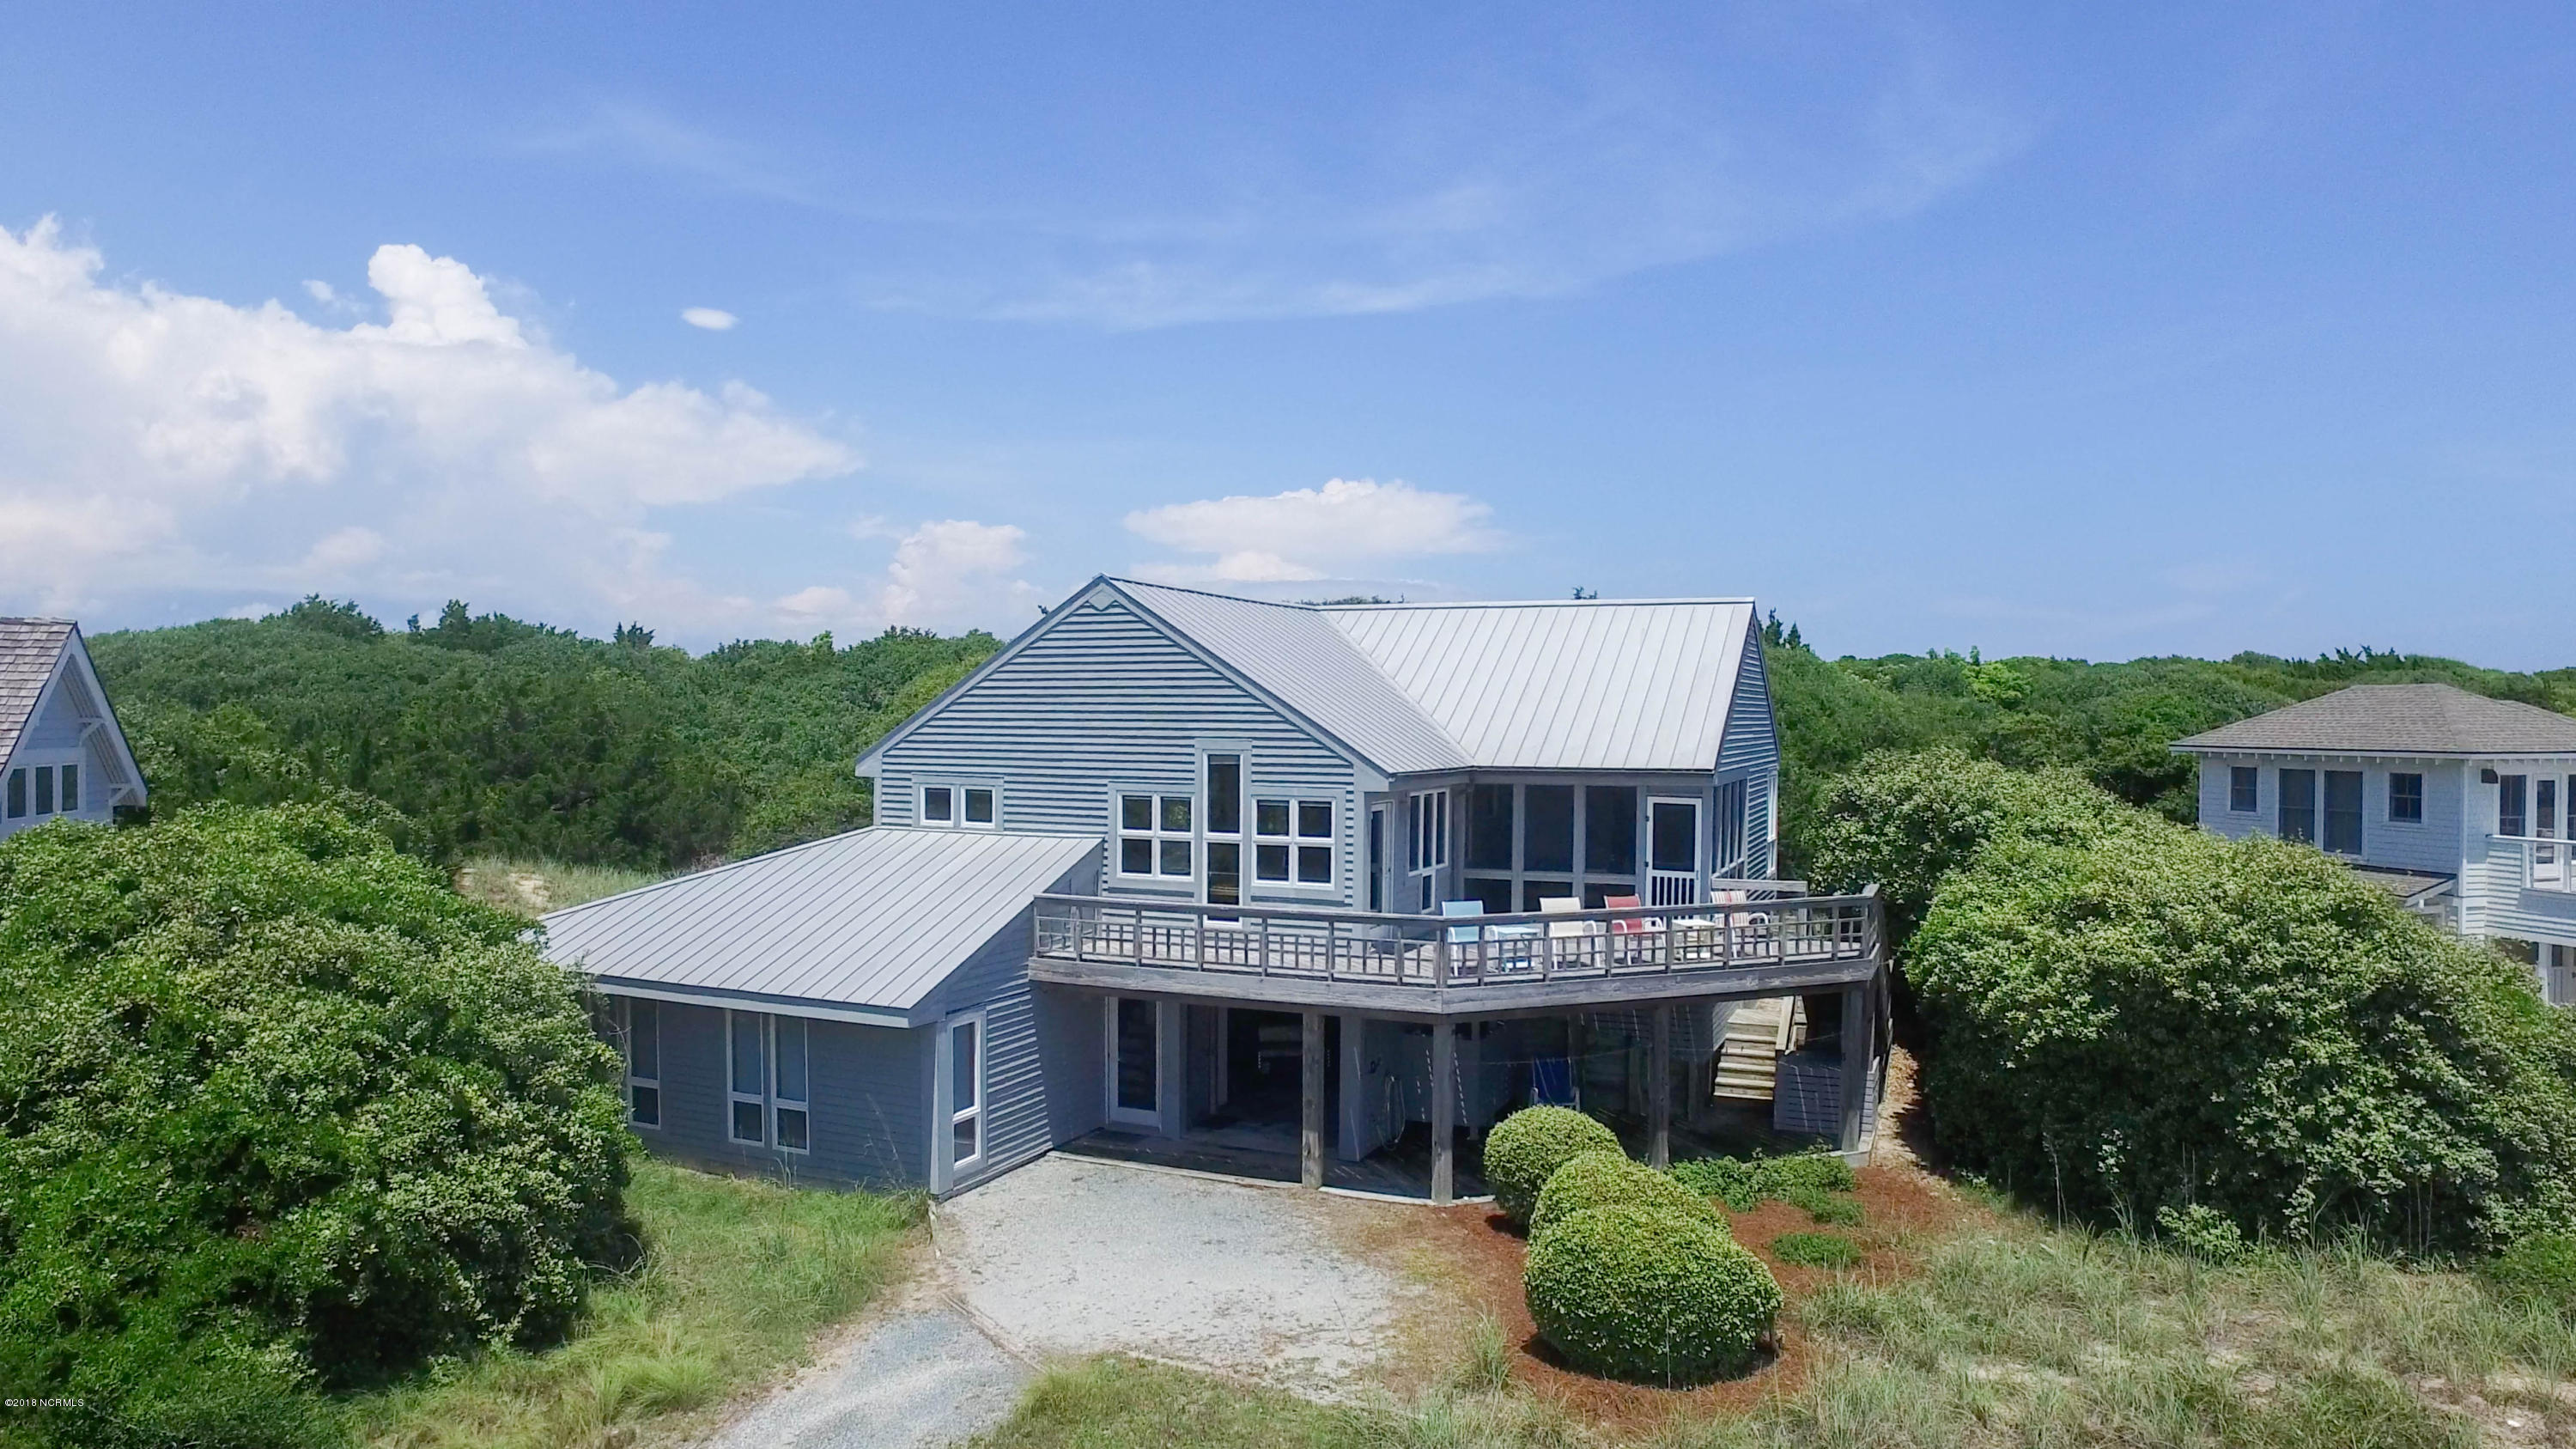 505 S Bald Head Wynd Bald Head Island, NC 28461